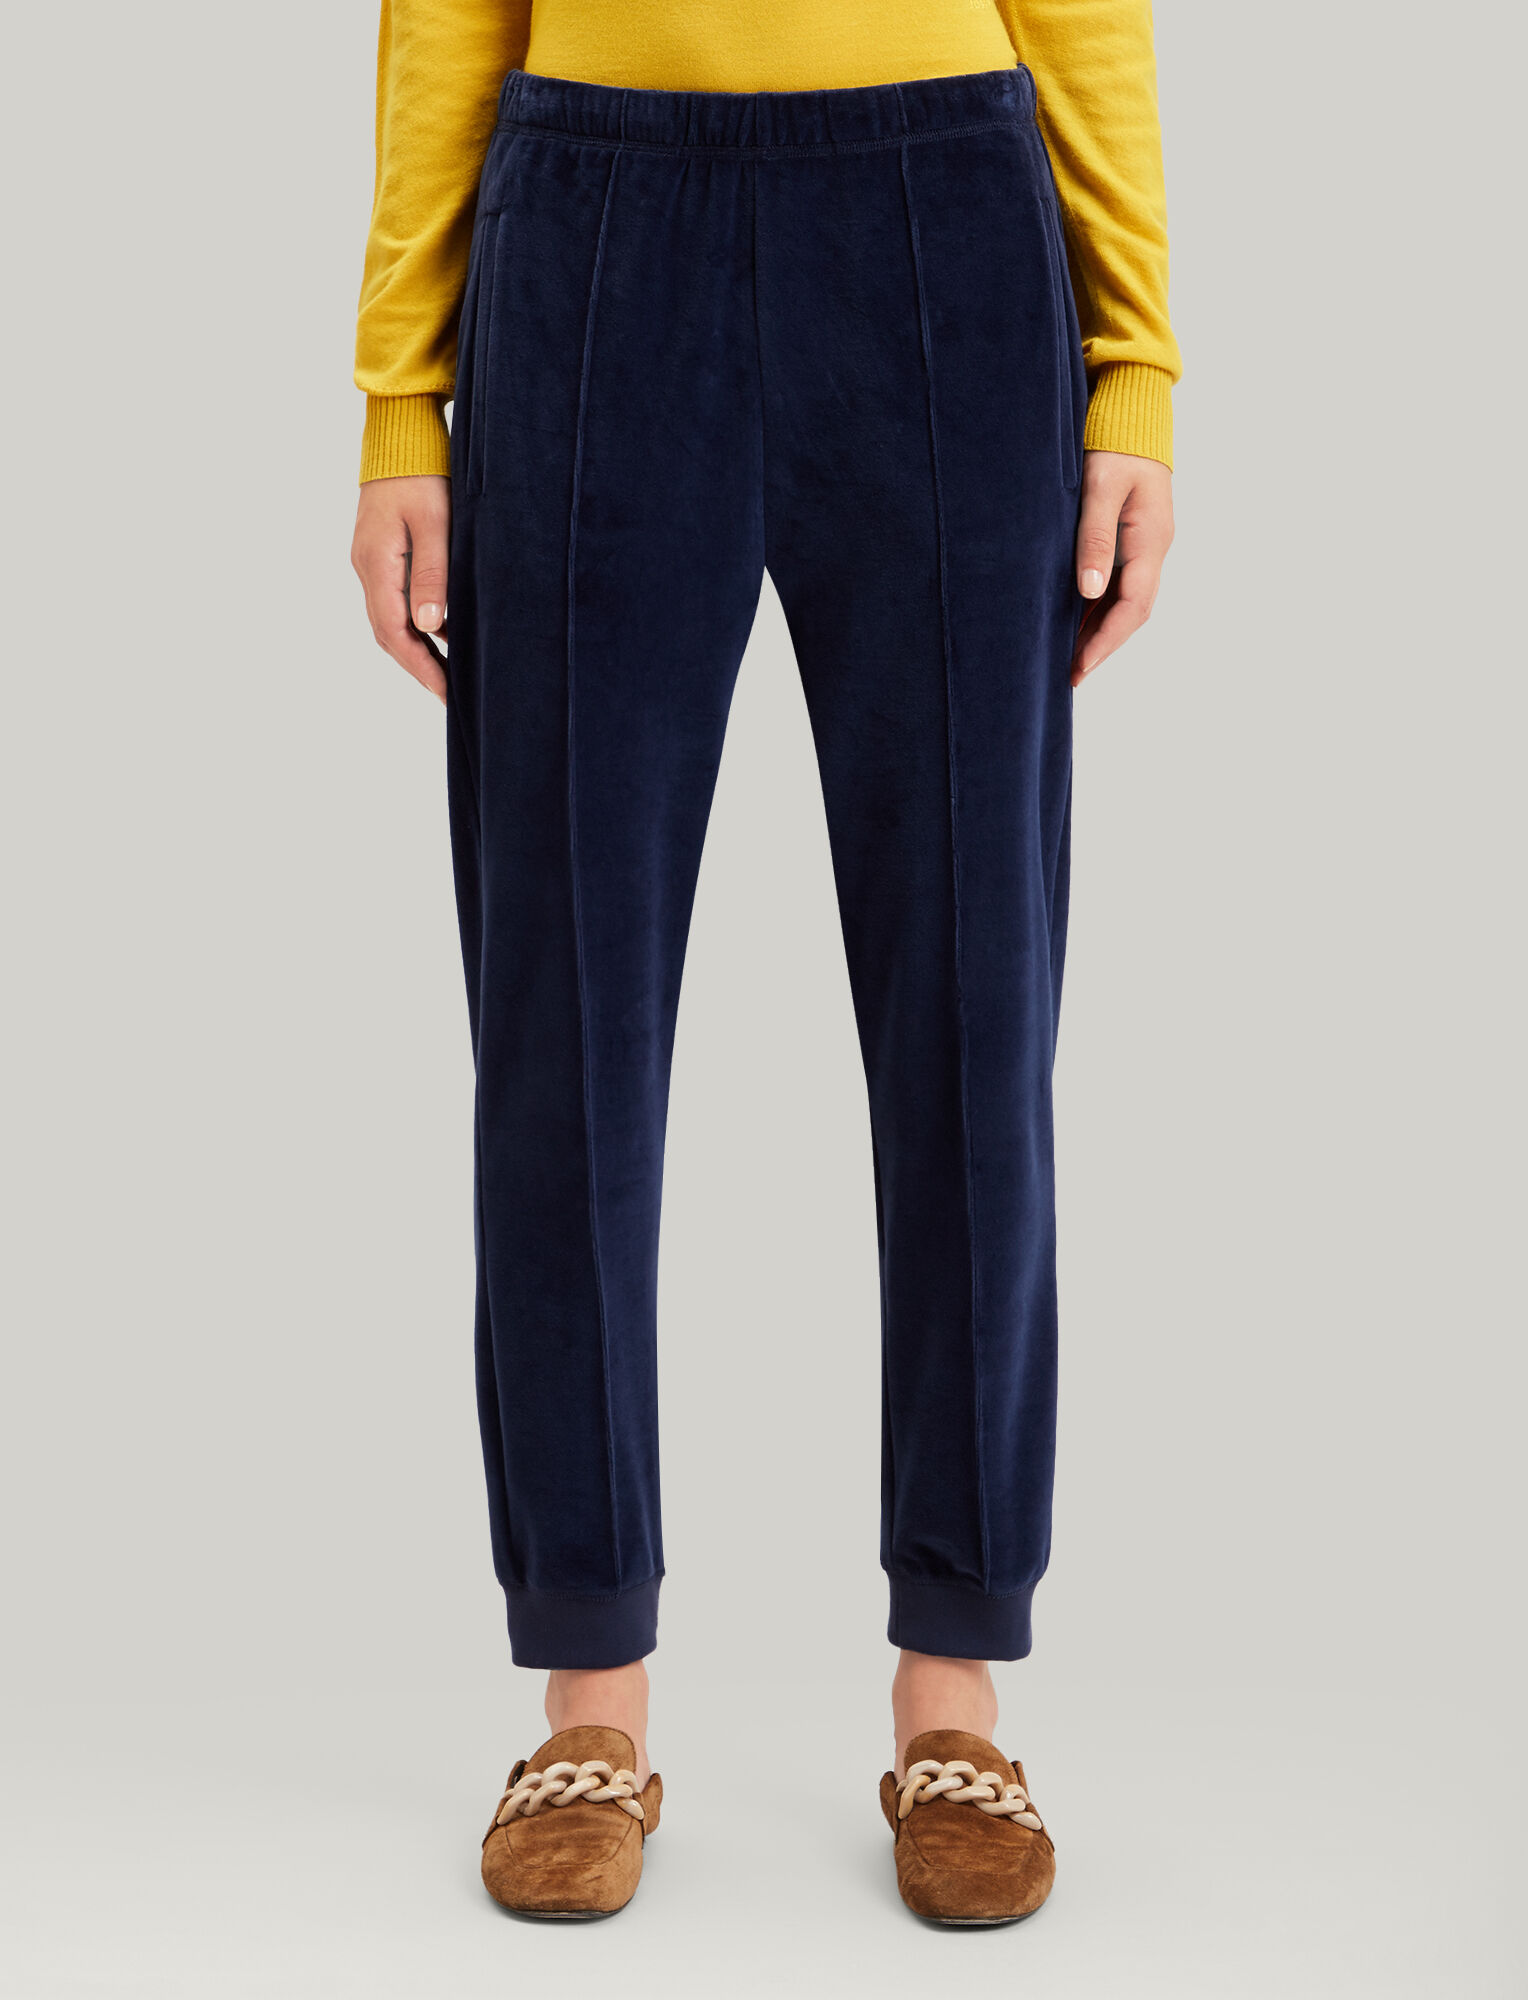 Joseph, Jog Jersey Velours Trousers, in NAVY